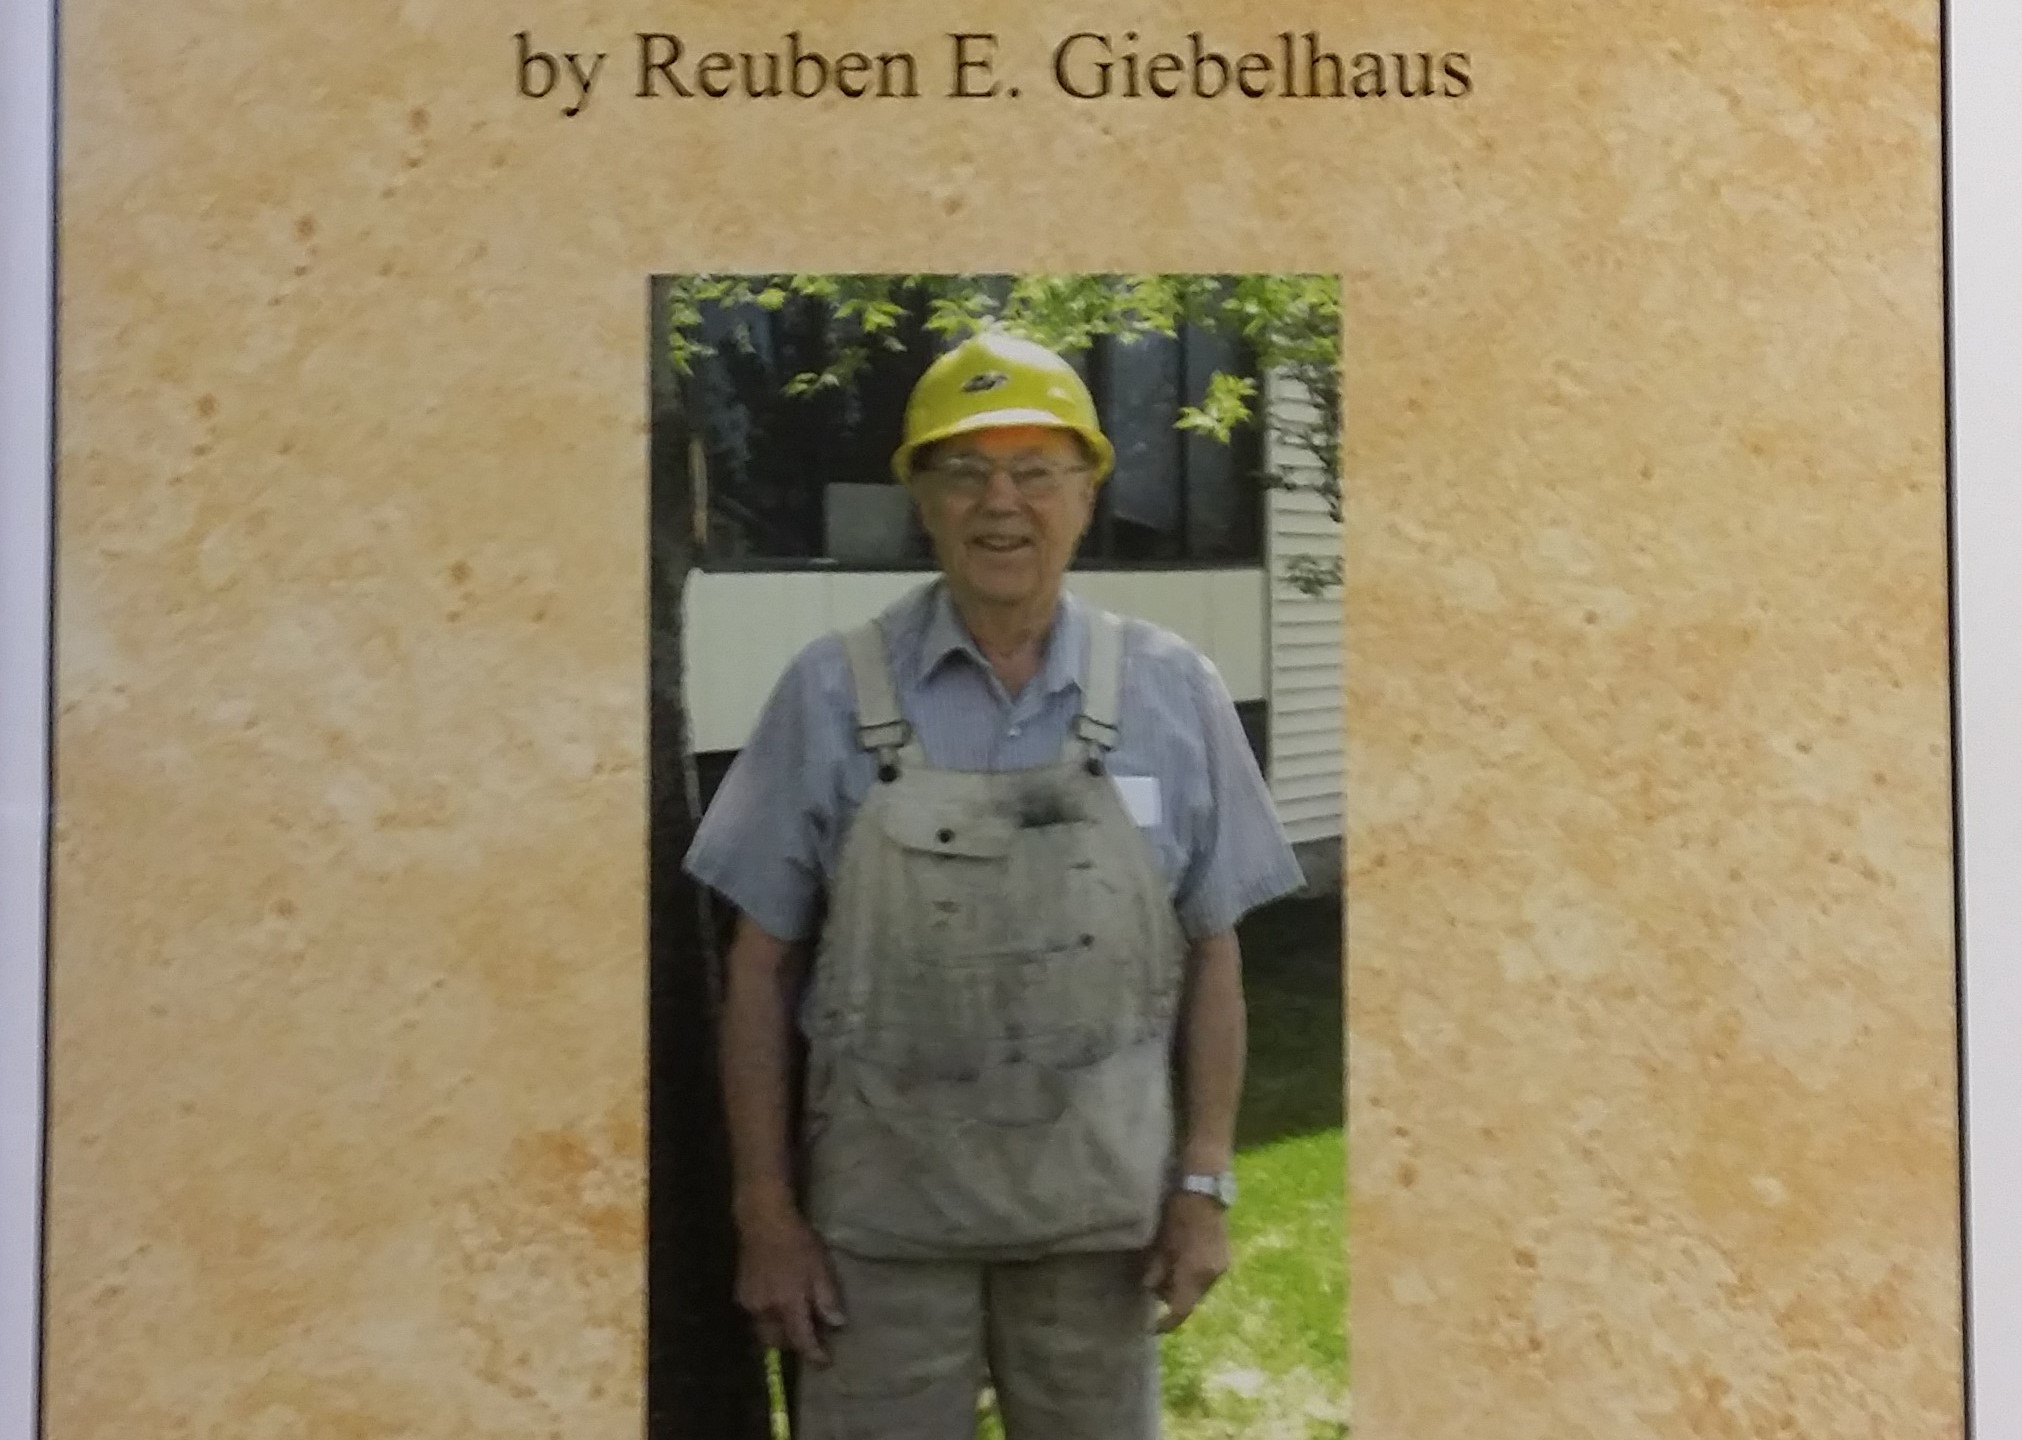 Book he wrote at age 89 (2012)